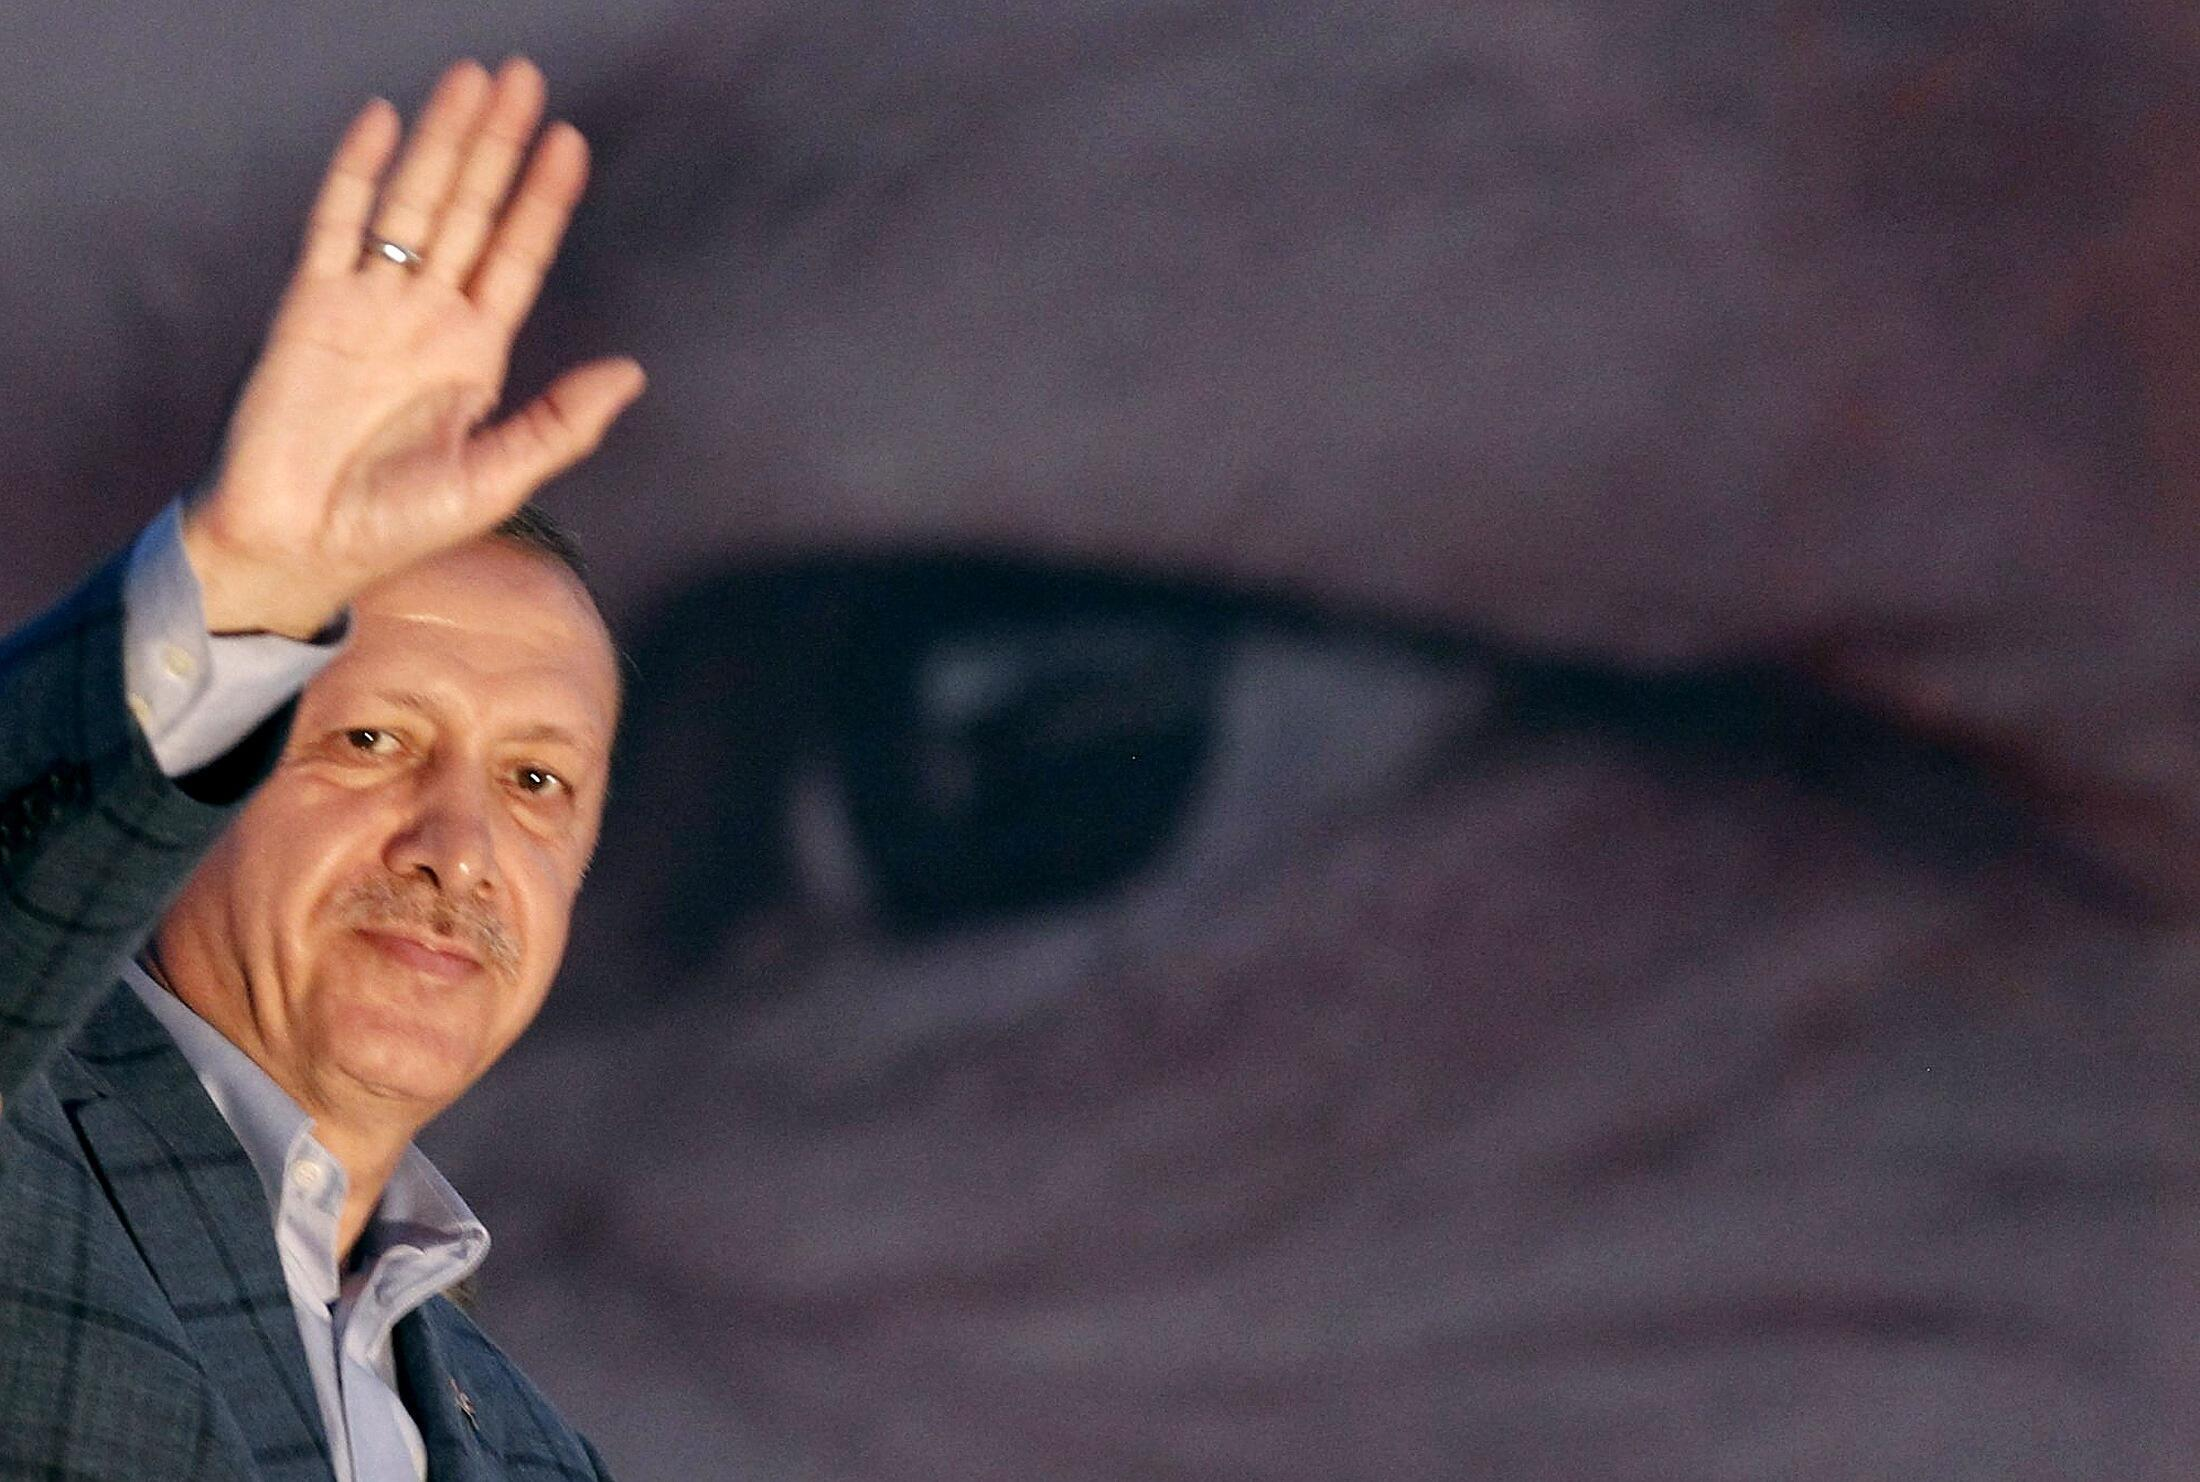 Recep Tayyip Erdogan waves to supporters on Sunday evening